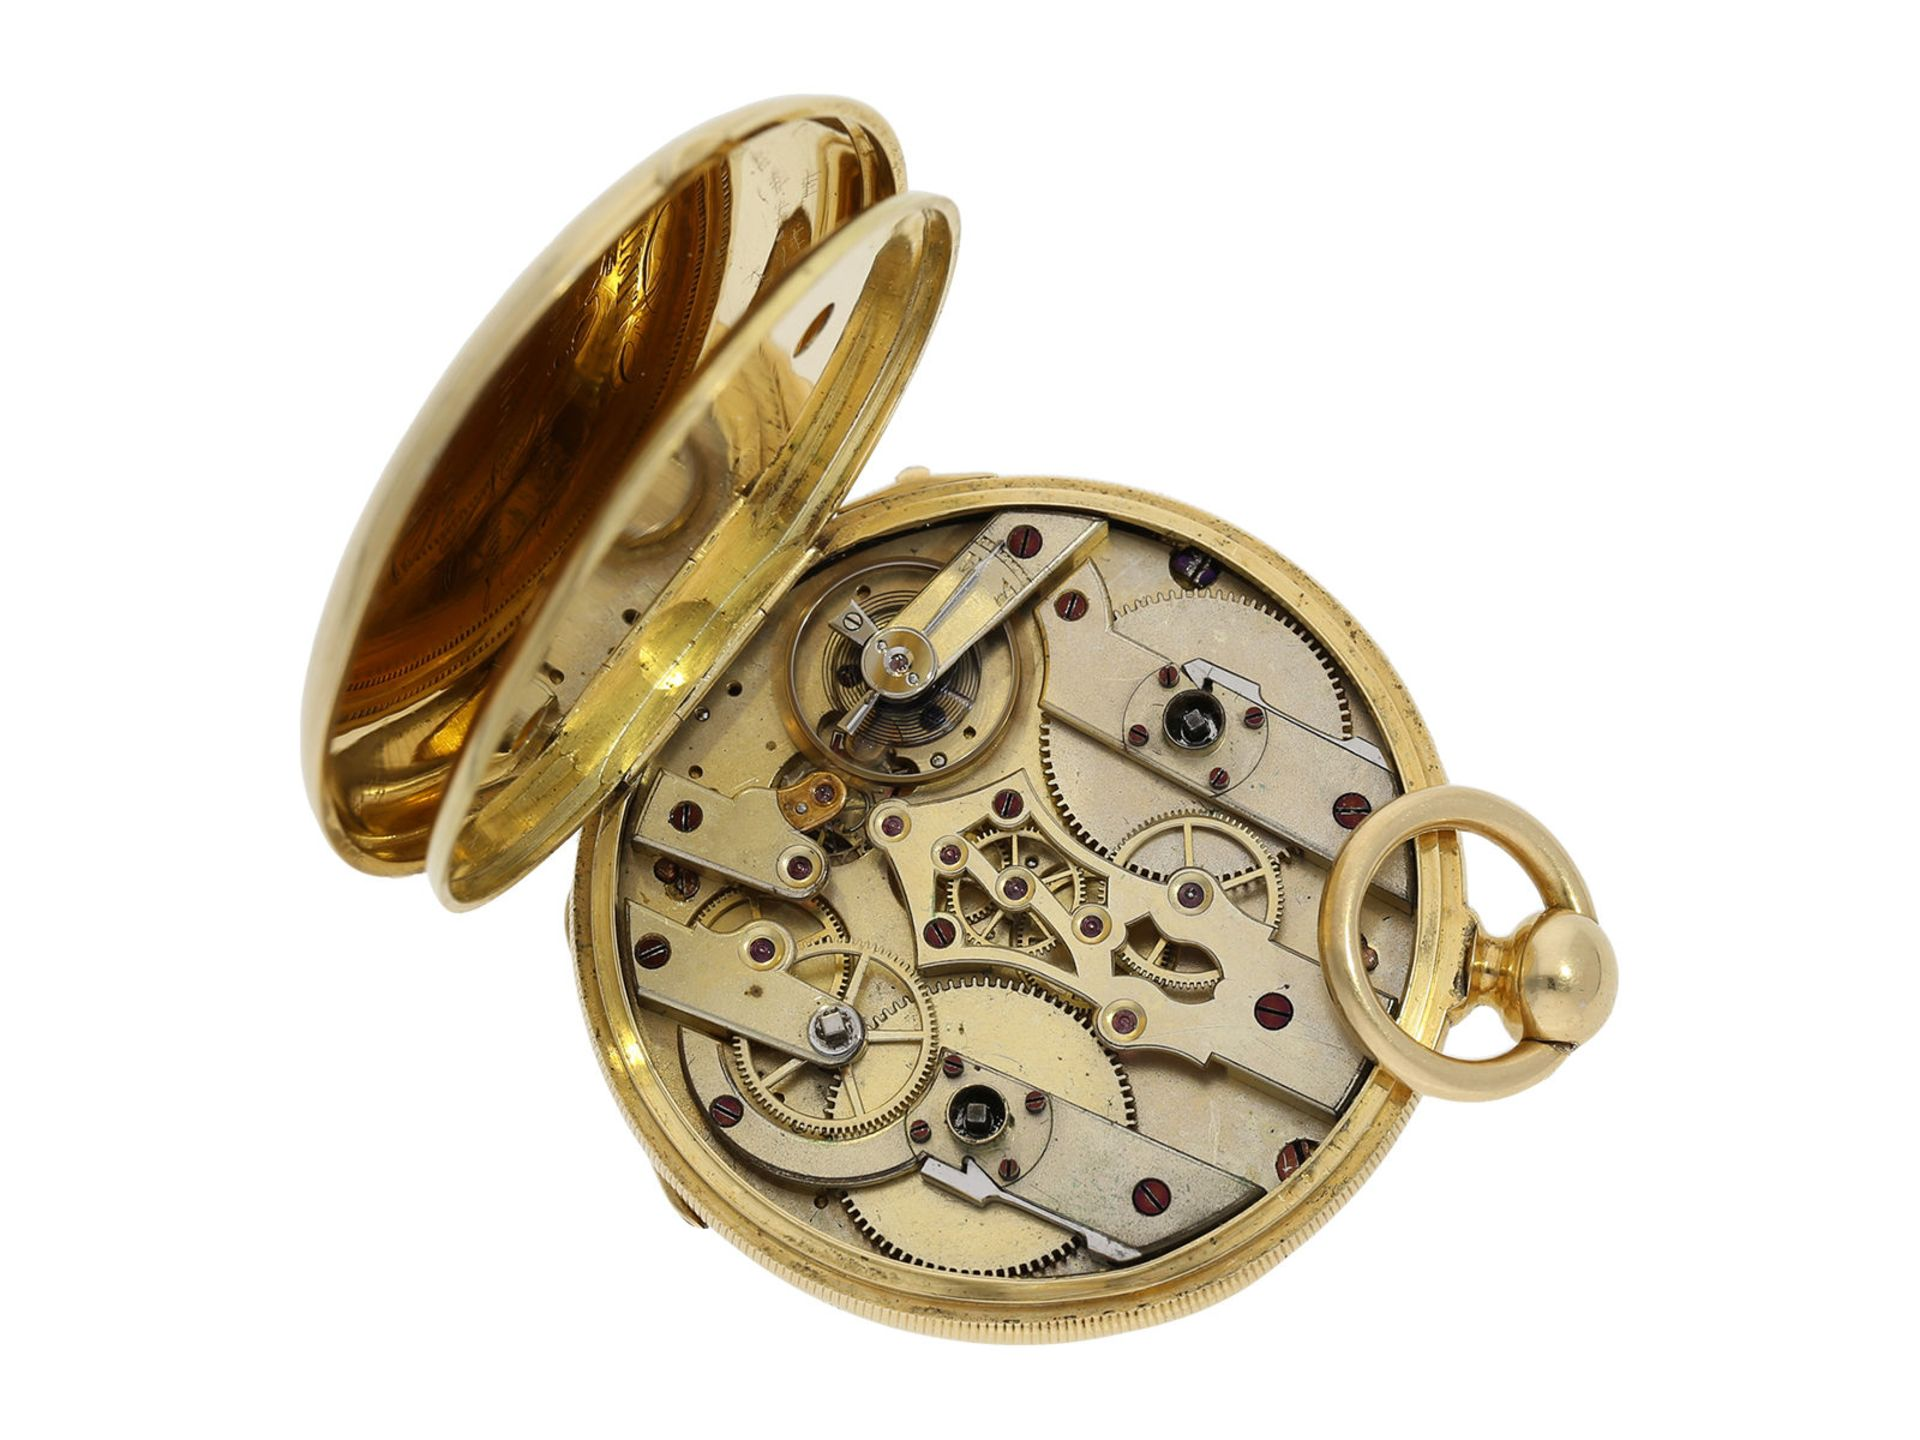 Pocket watch: fine Lepine with Seconde Morte, DuBois & Fils Geneve No. 11311, ca. 1850 - Bild 4 aus 6